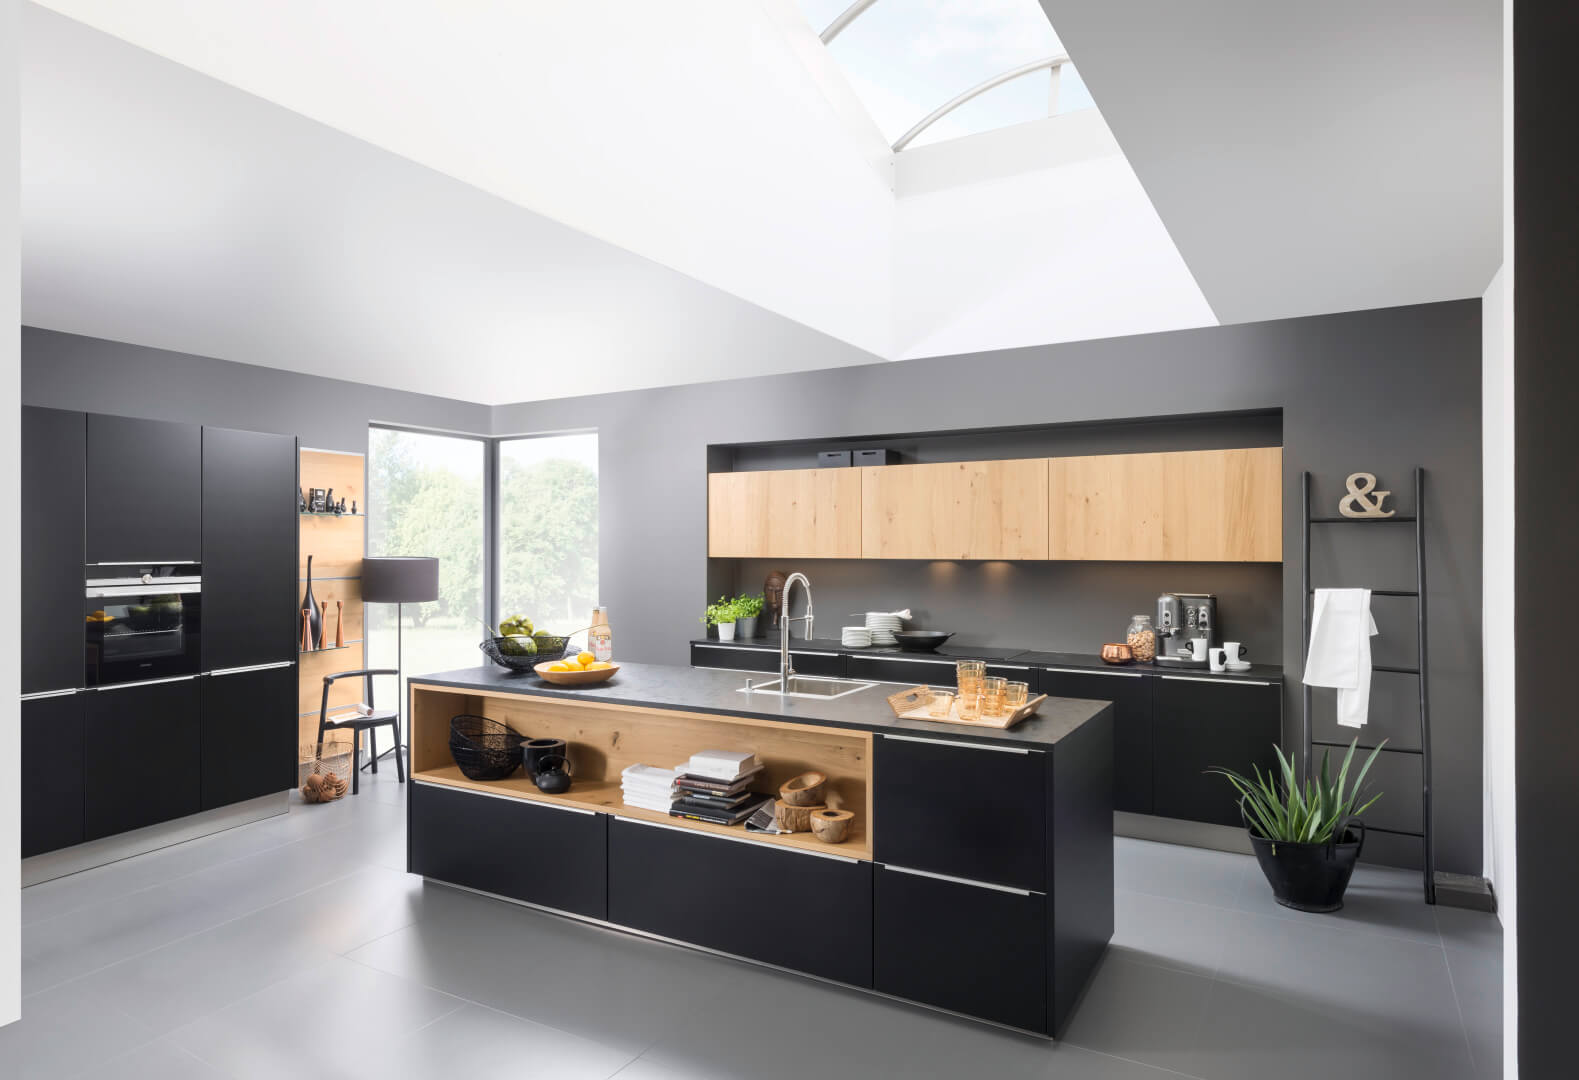 Nolte-Kitchens-Legno-Gallery6